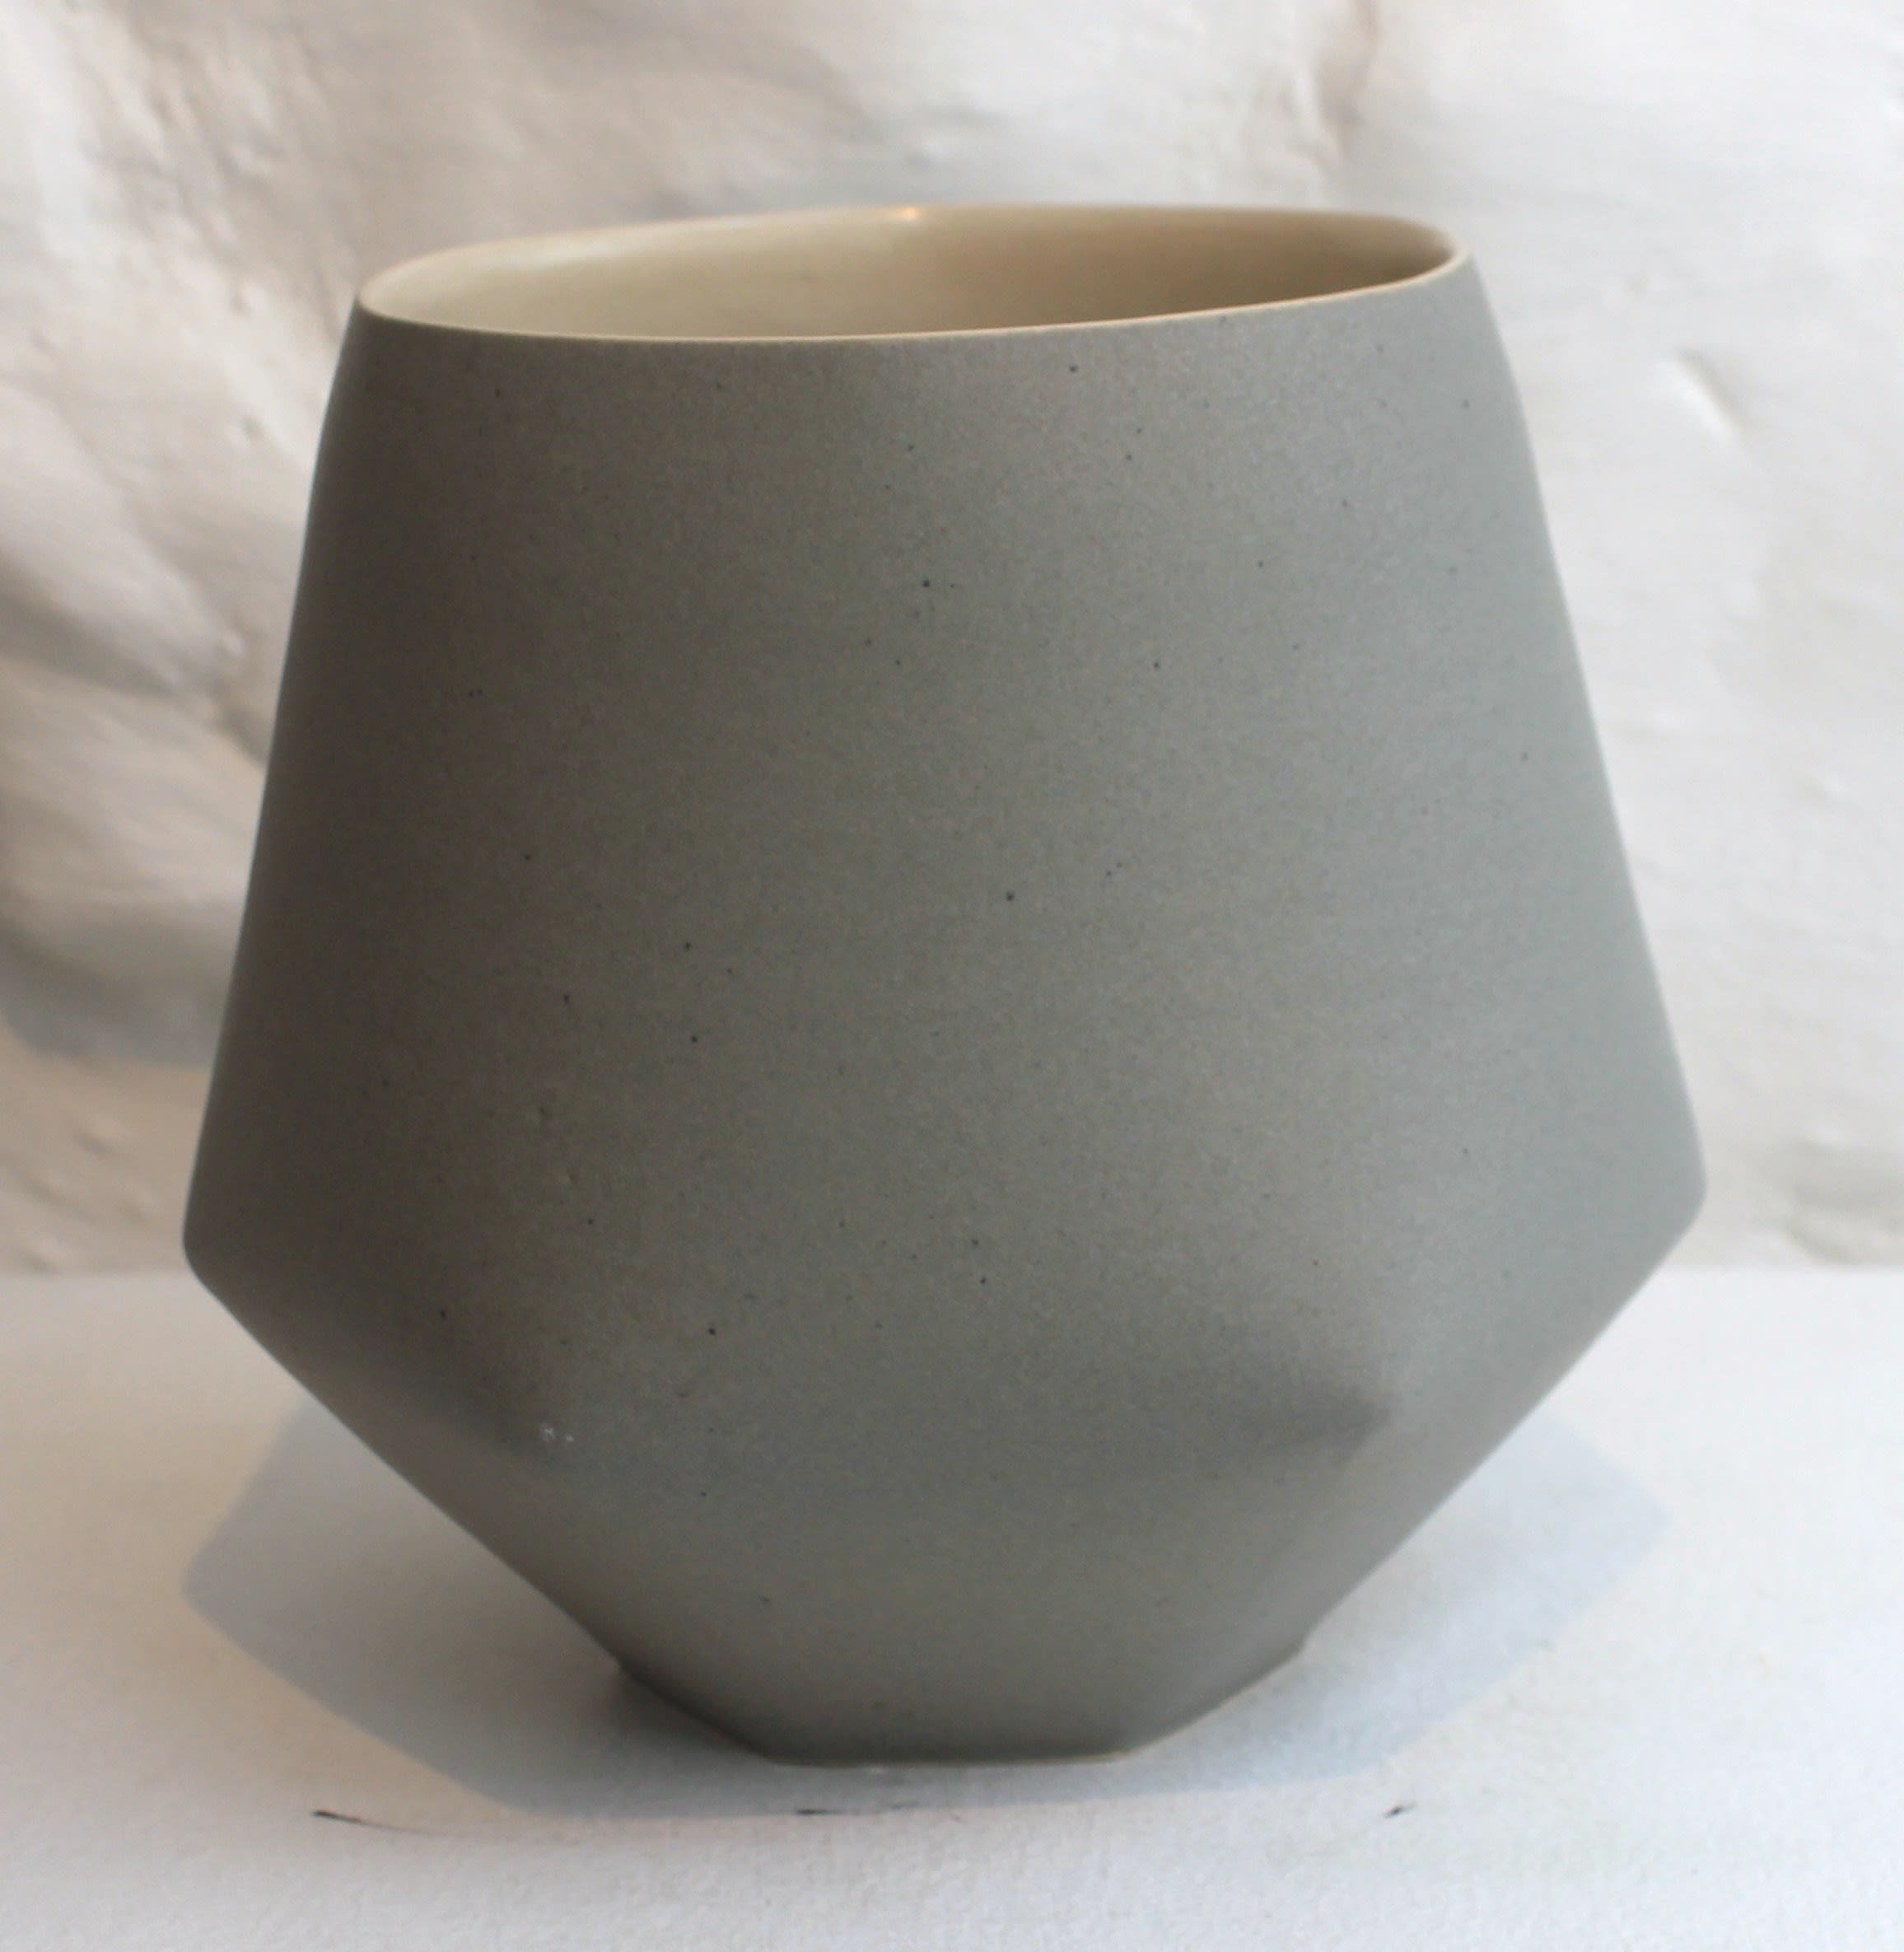 """<span class=""""link fancybox-details-link""""><a href=""""/artists/33-sun-kim/works/5736-sun-kim-large-vase-2018/"""">View Detail Page</a></span><div class=""""artist""""><strong>Sun Kim</strong></div> <div class=""""title""""><em>Large Vase</em>, 2018</div> <div class=""""signed_and_dated"""">stamped by the artist</div> <div class=""""medium"""">Porcelain</div> <div class=""""dimensions"""">18 x 16 x 12 cm<br /> 7 1/8 x 6 1/4 x 4 3/4 inches</div><div class=""""price"""">£400.00</div><div class=""""copyright_line"""">OwnArt: £ 40 x 10 Months, 0% APR</div>"""